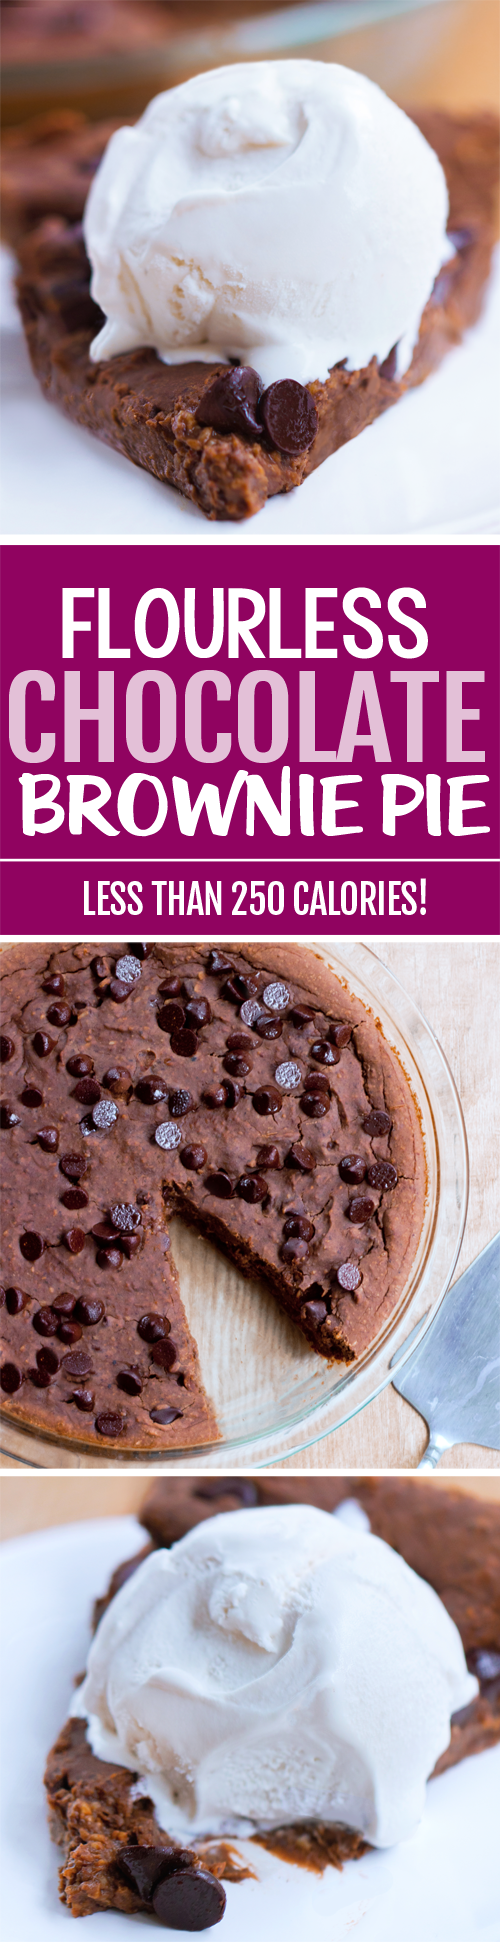 Chocolate brownie pie with NO flour, and a secret healthy ingredient you'd never expect: black beans!